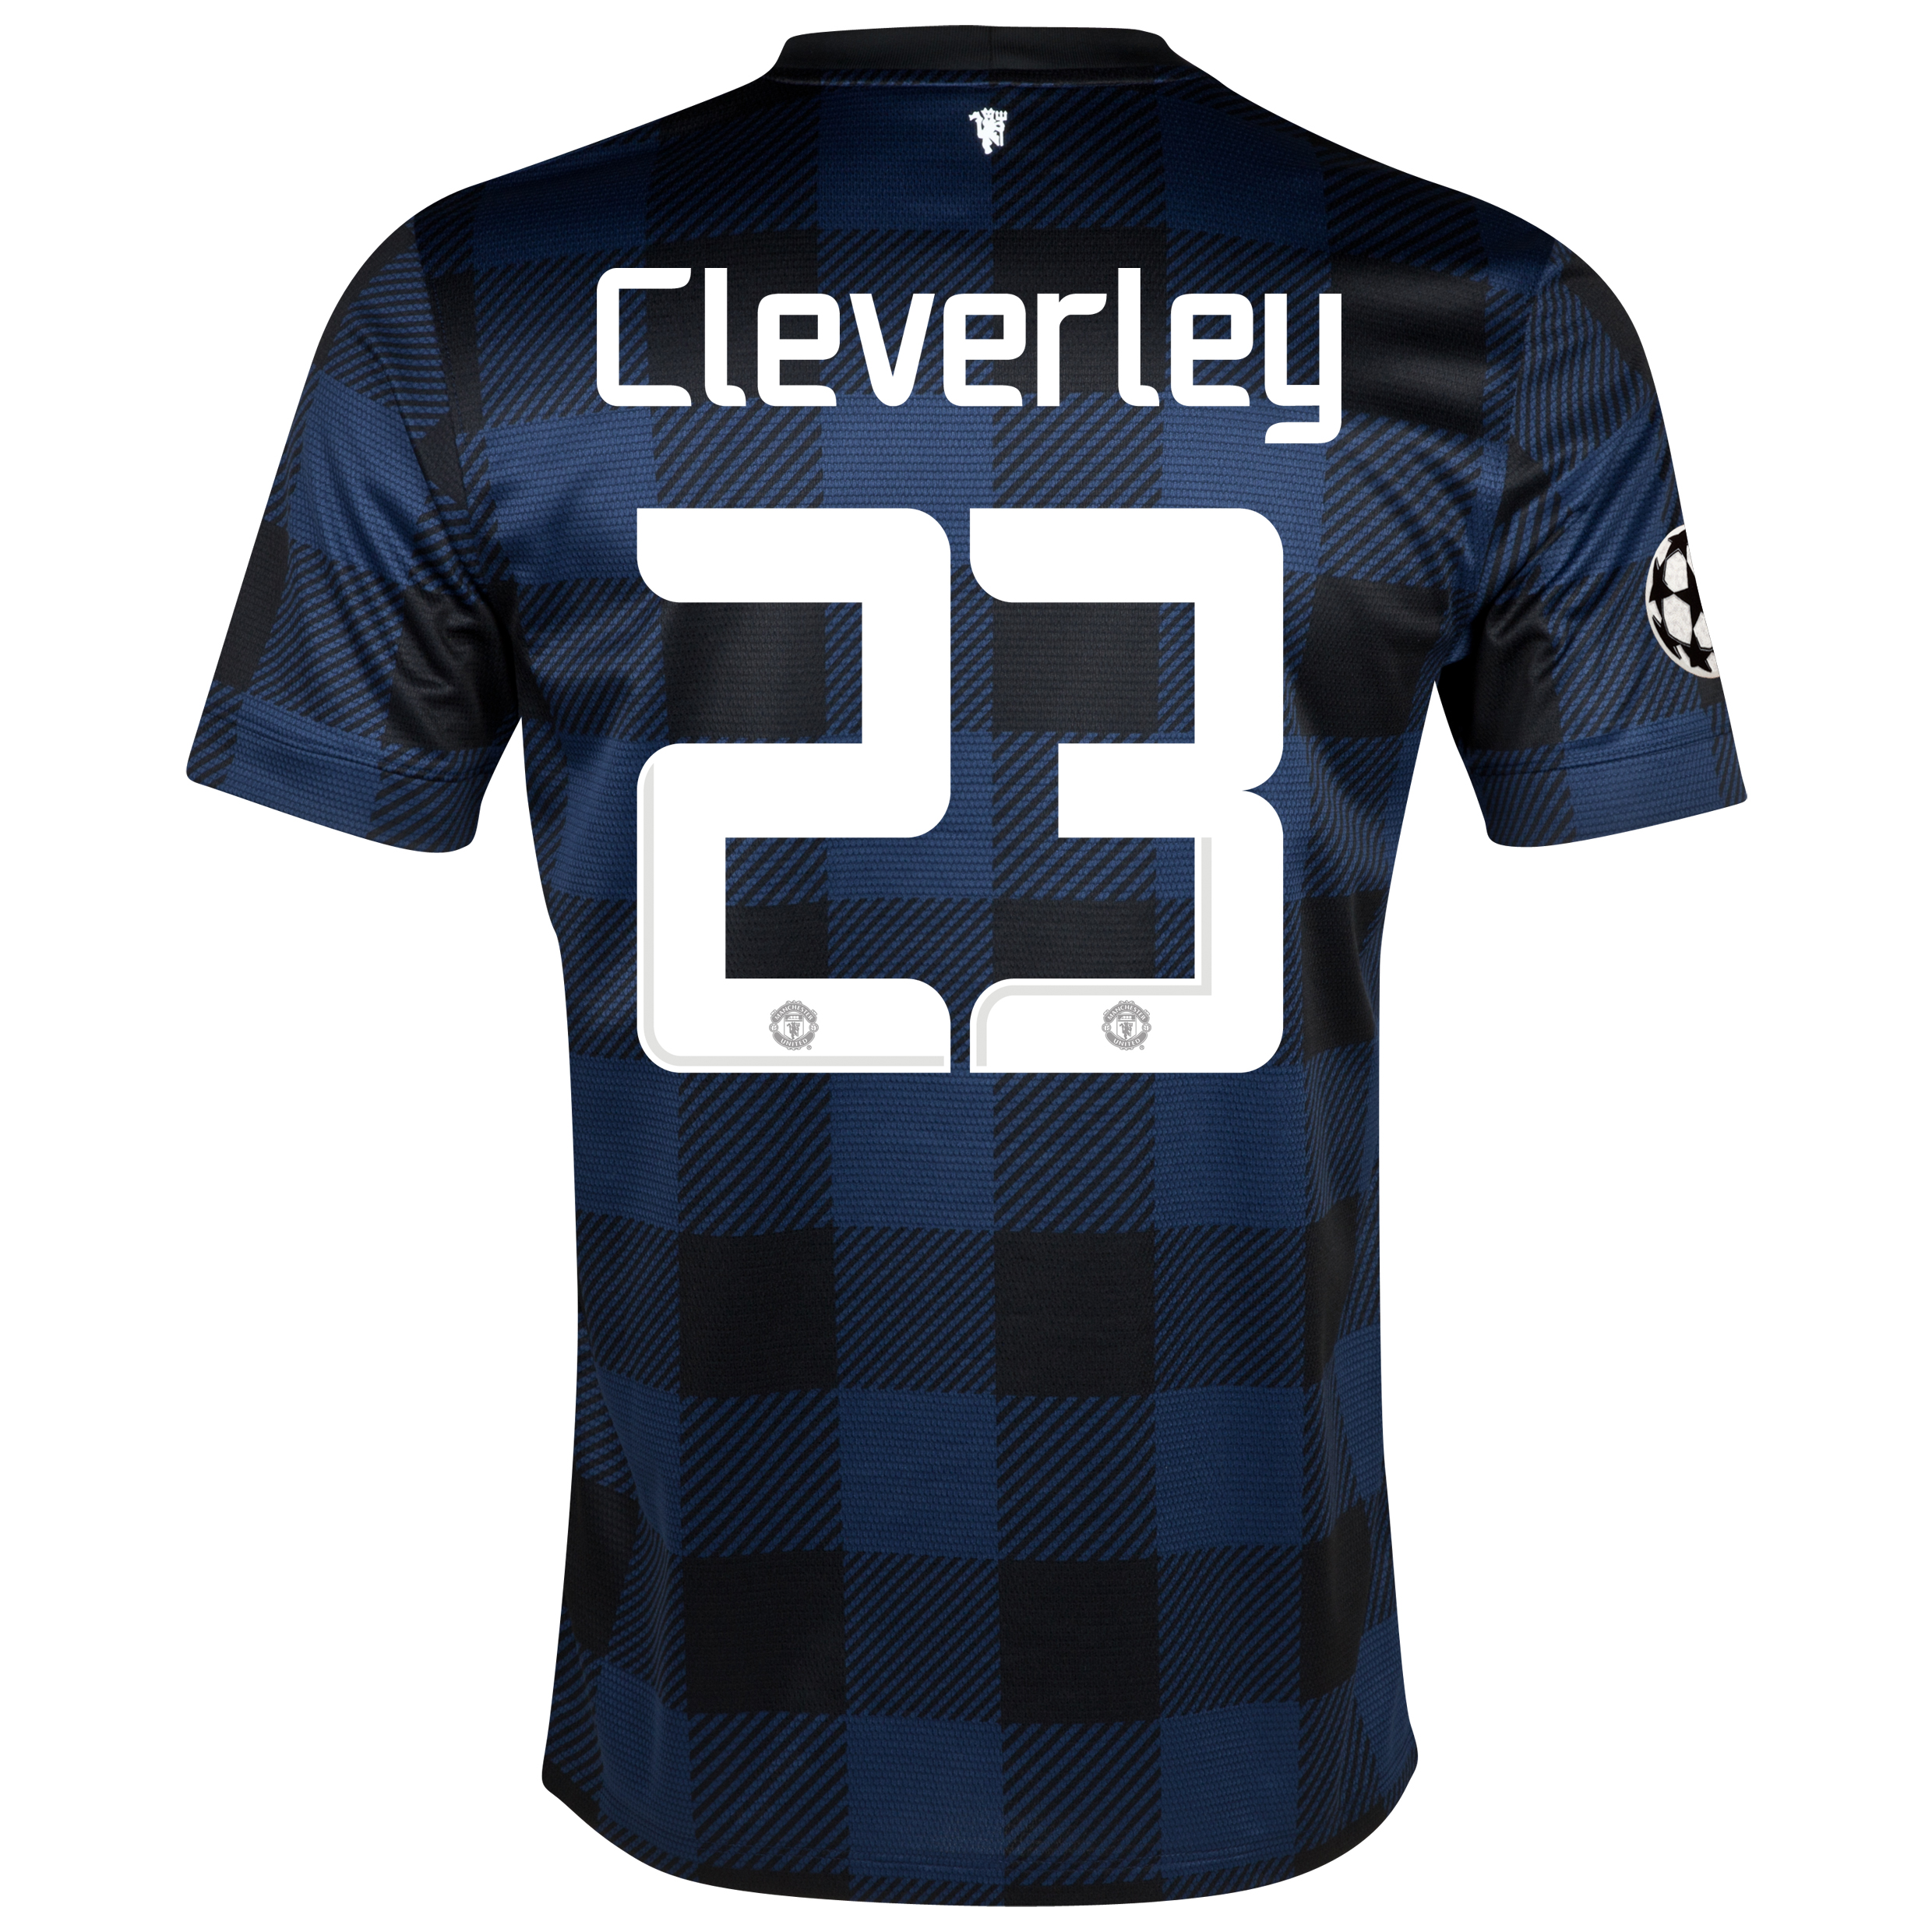 Manchester United UEFA Champions League Away Shirt 2013/14 with Cleverley 23 printing